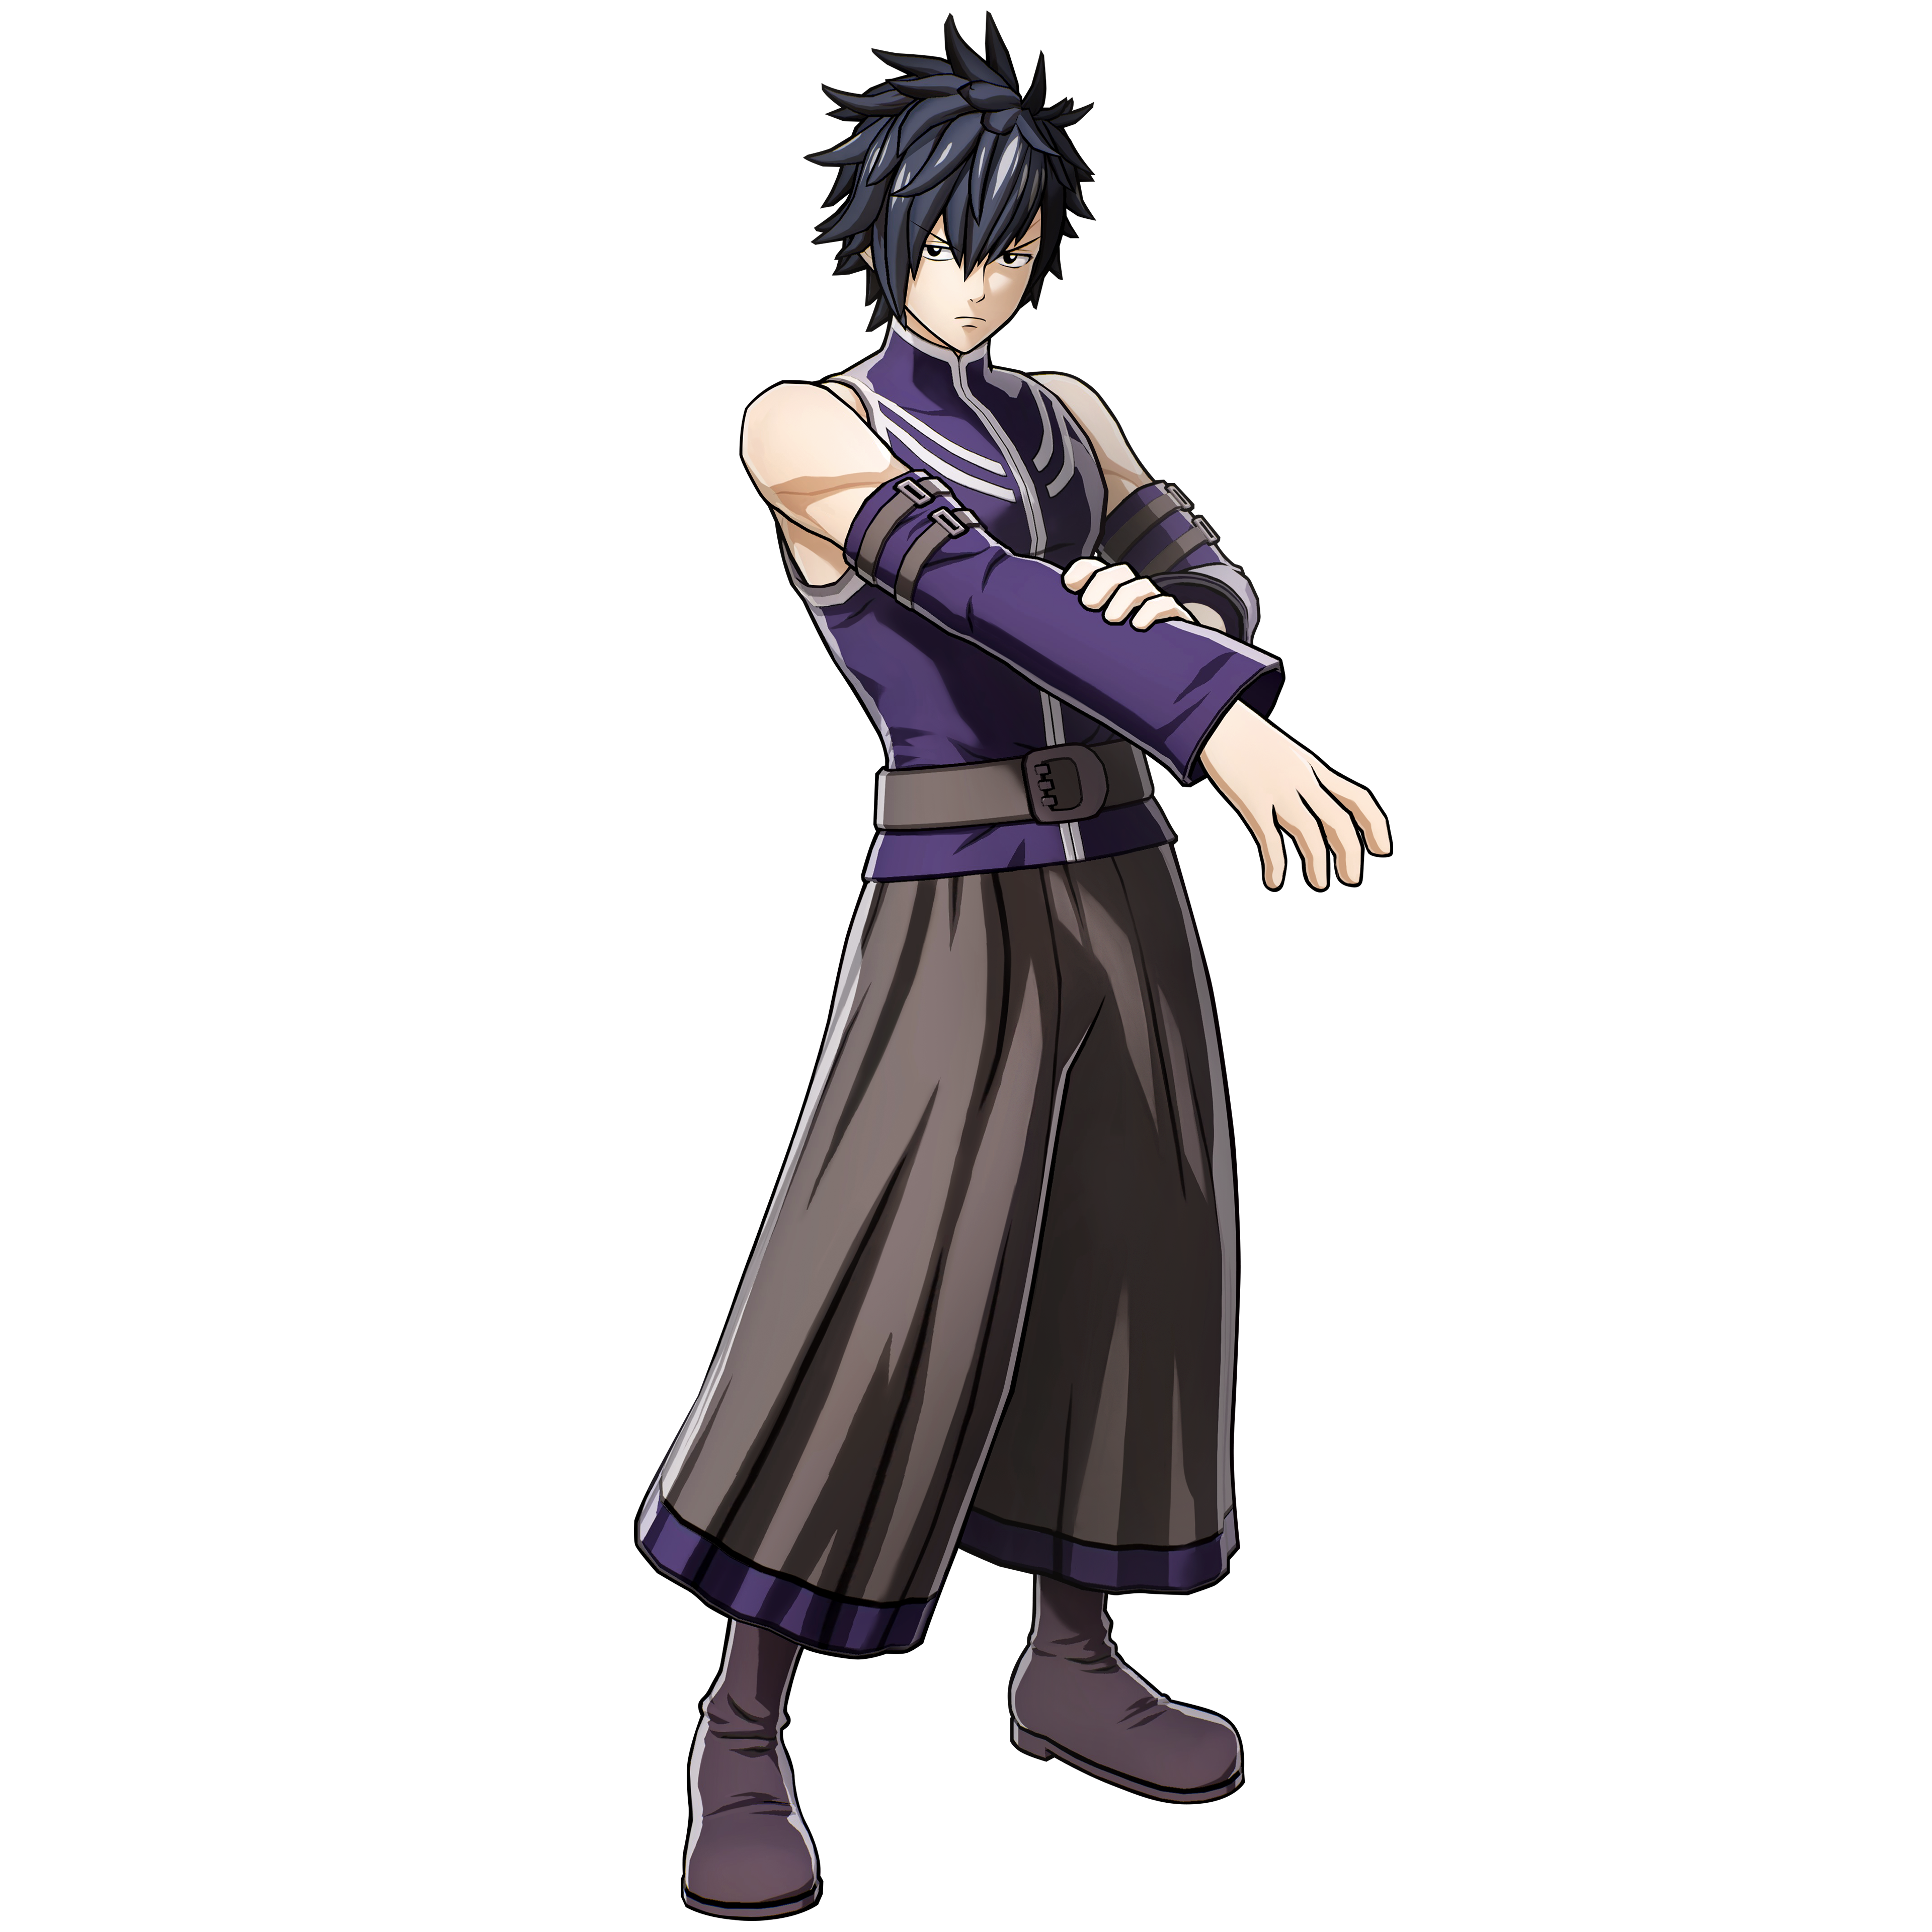 Gray Fullbuster Render (Fairy Tail Game).png